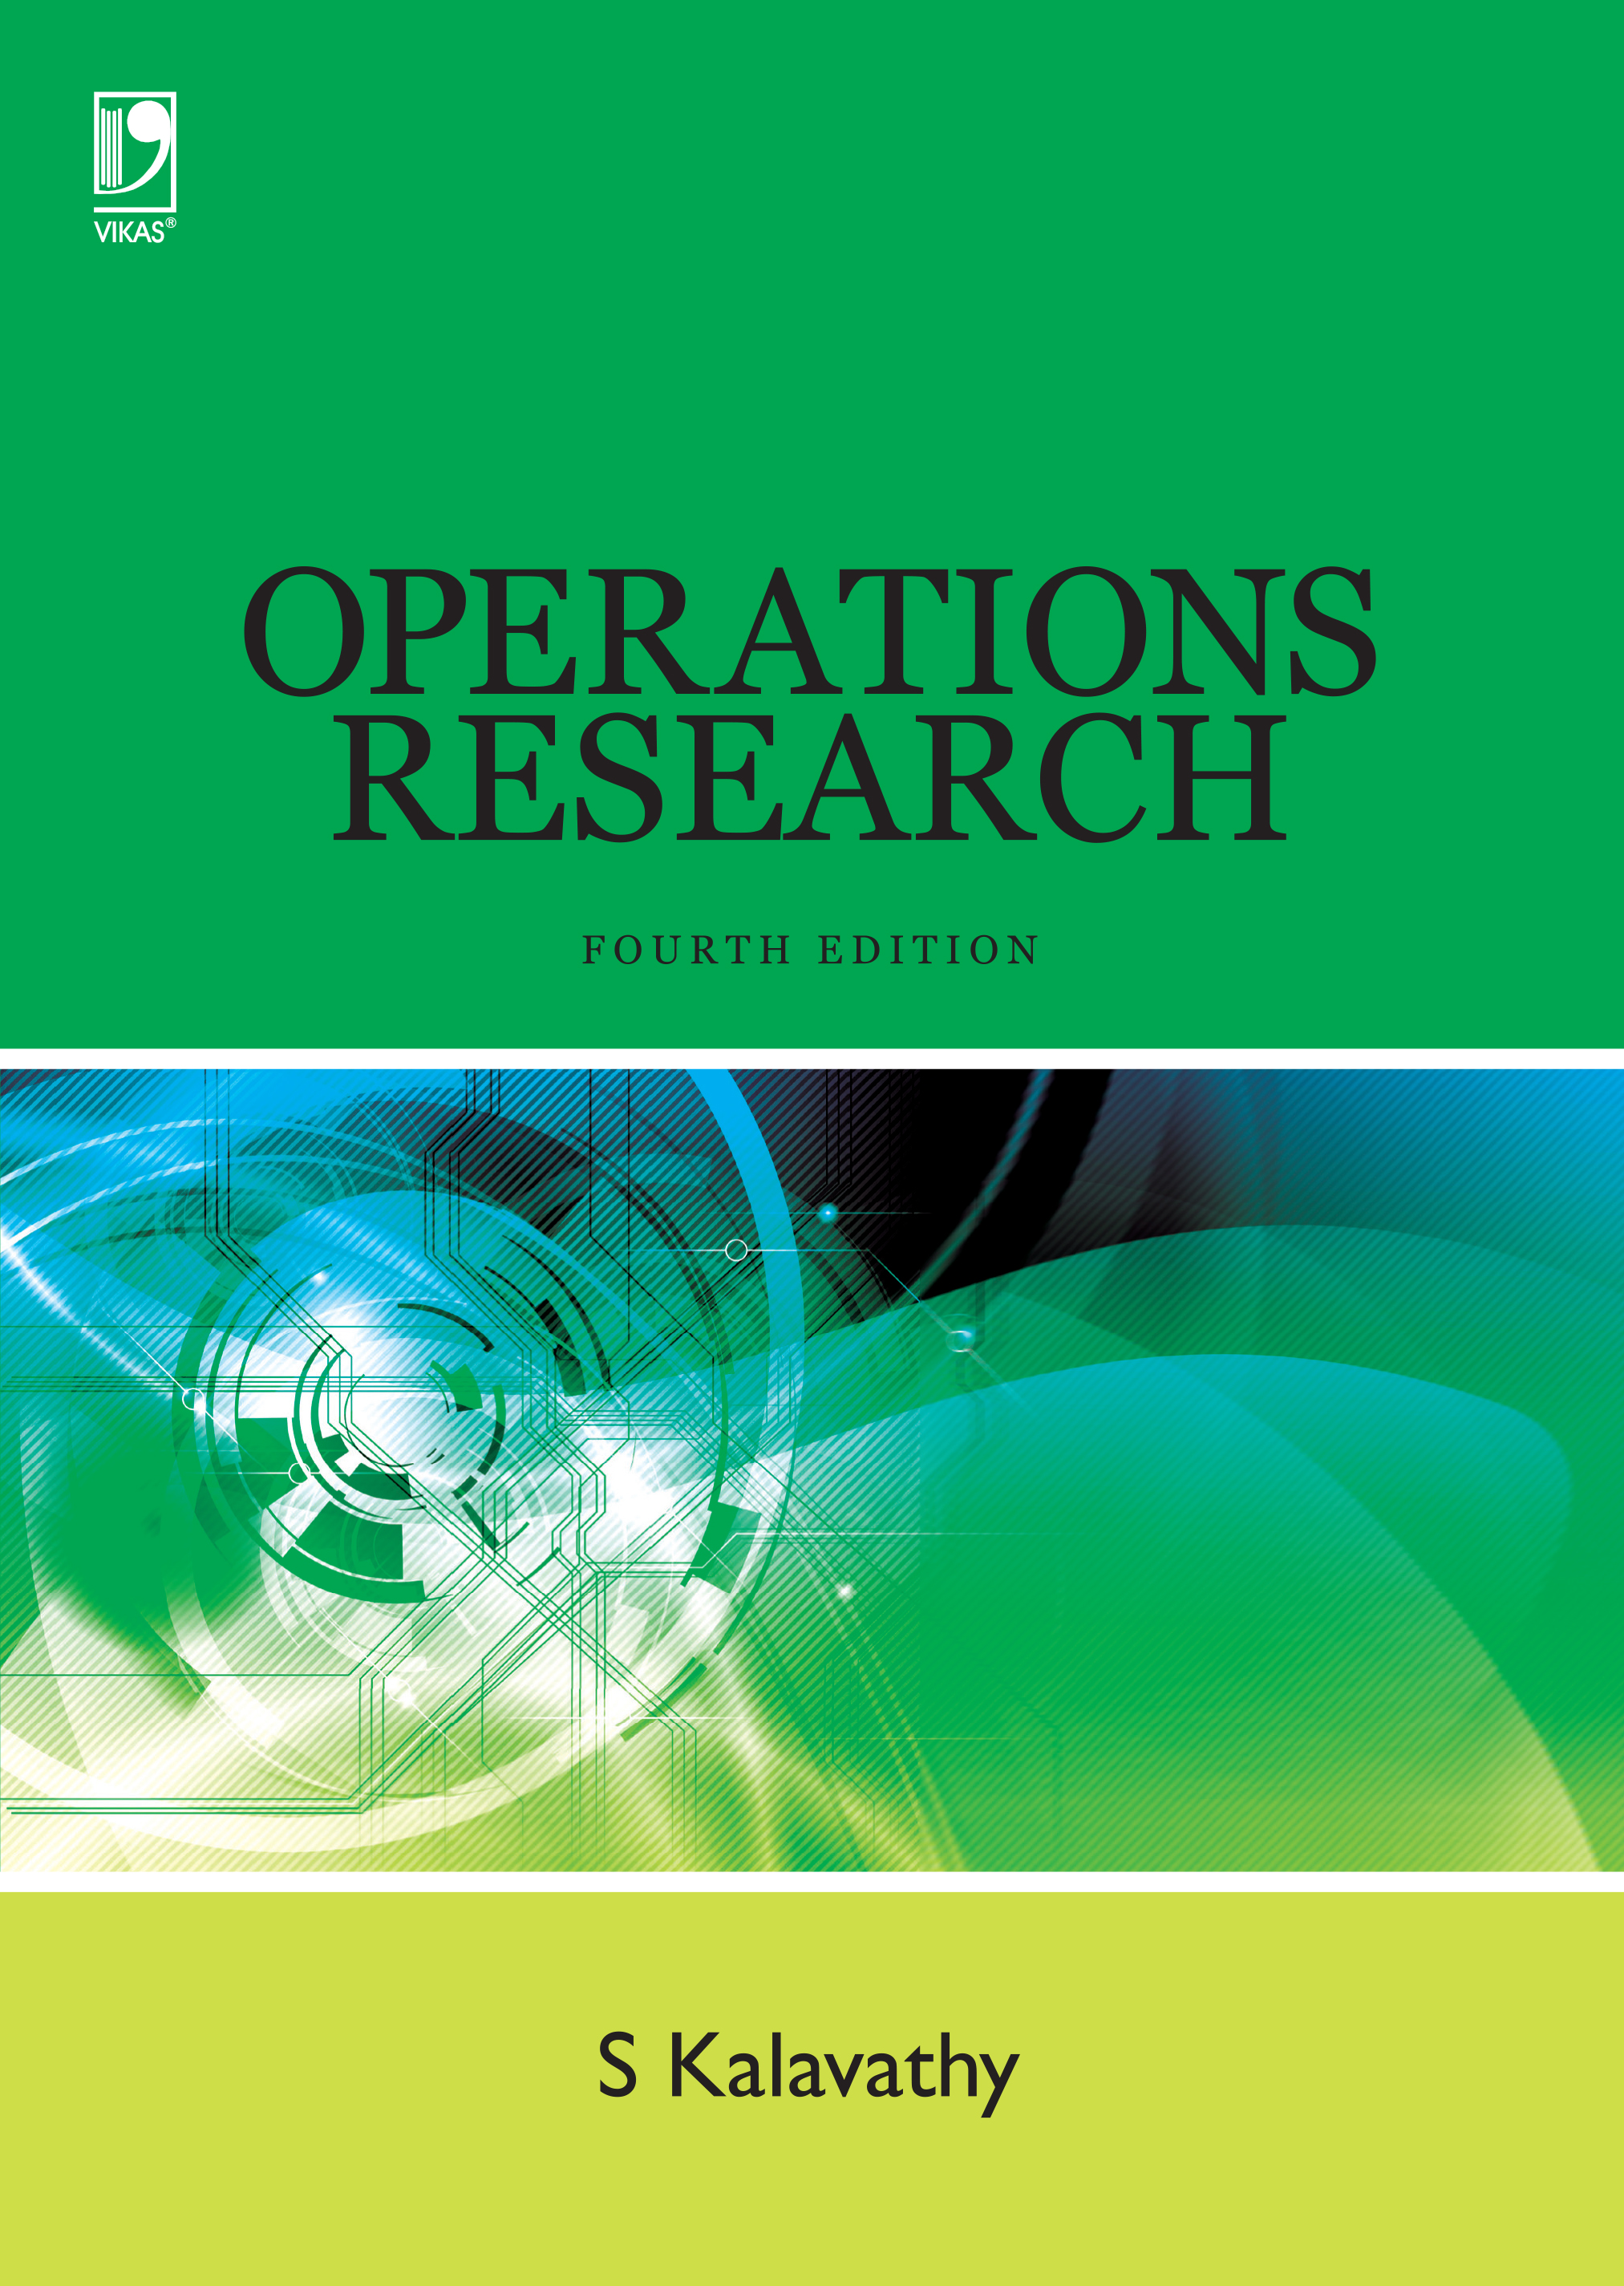 Operations Research, 4/e  by S Kalavathy